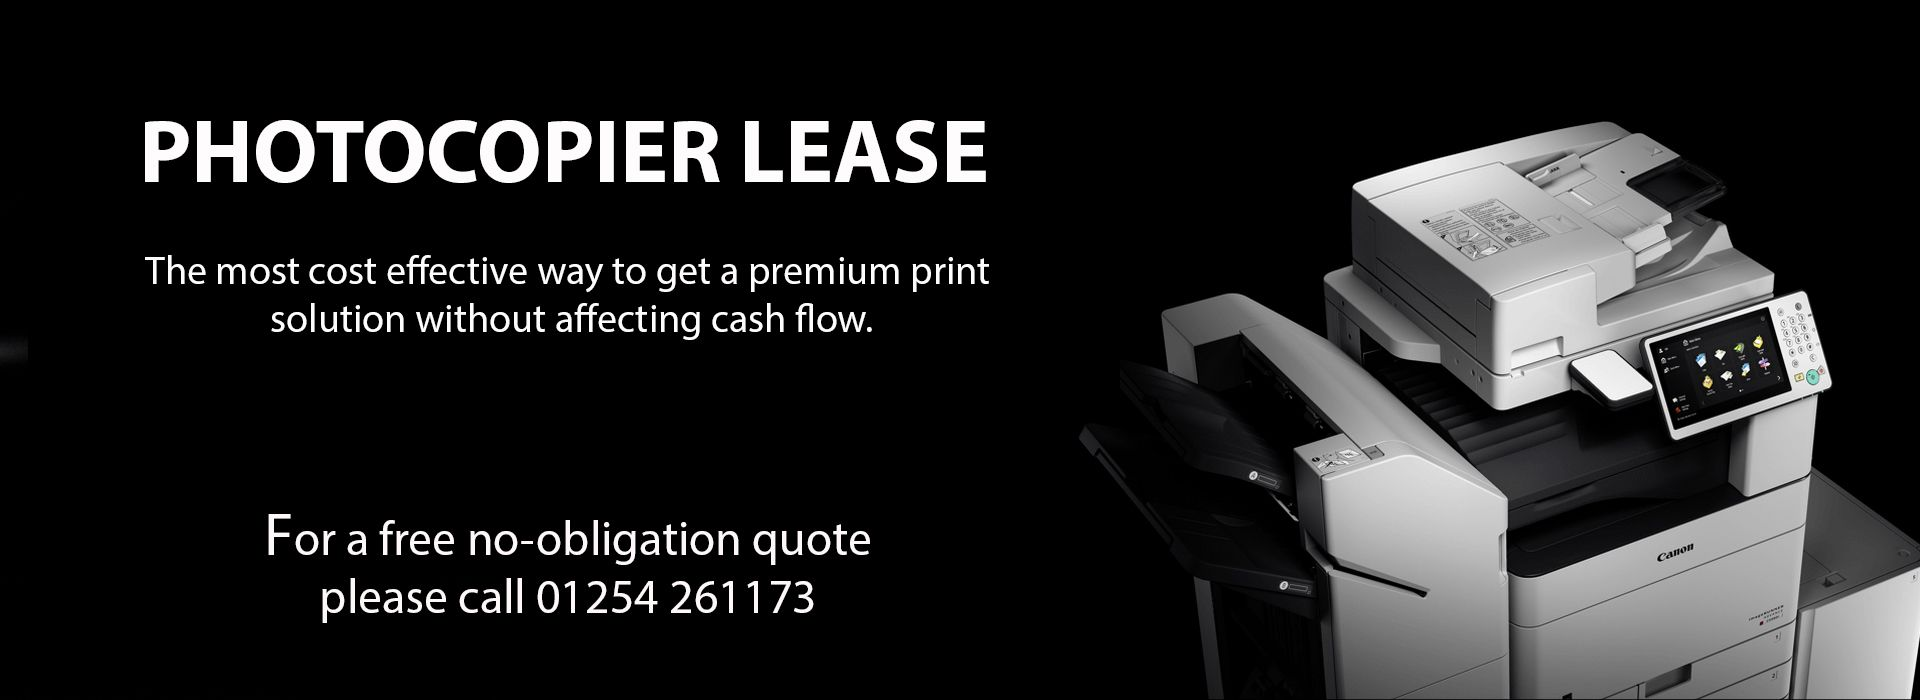 photocopier lease lancashire blackburn burnley bolton preston